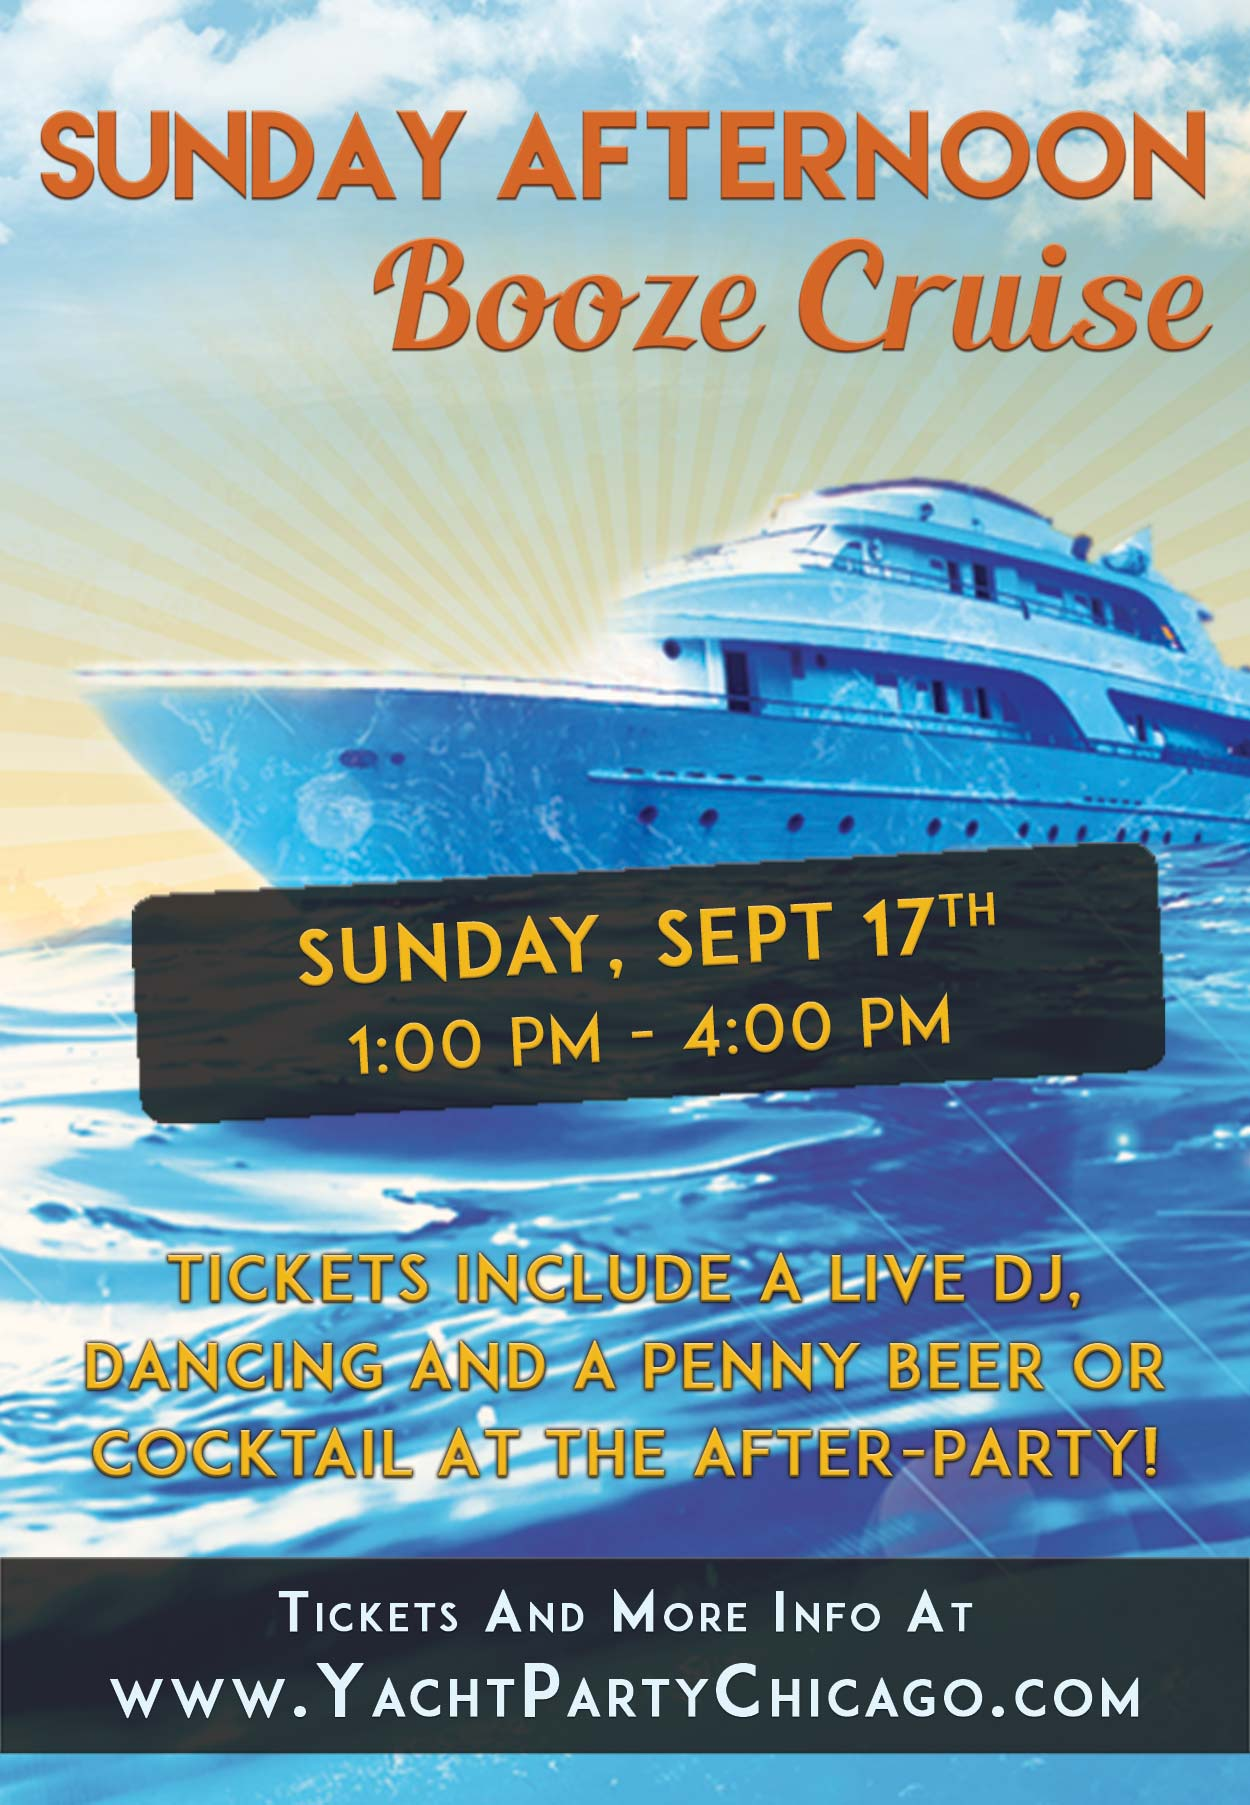 Sunday Afternoon Booze Cruise Partyon Lake Michigan! Tickets include a Live DJ, Dancing, and A Penny Drink At The After-Party at El Hefe! Catch breathtaking views of the skyline while aboard the booze cruise!